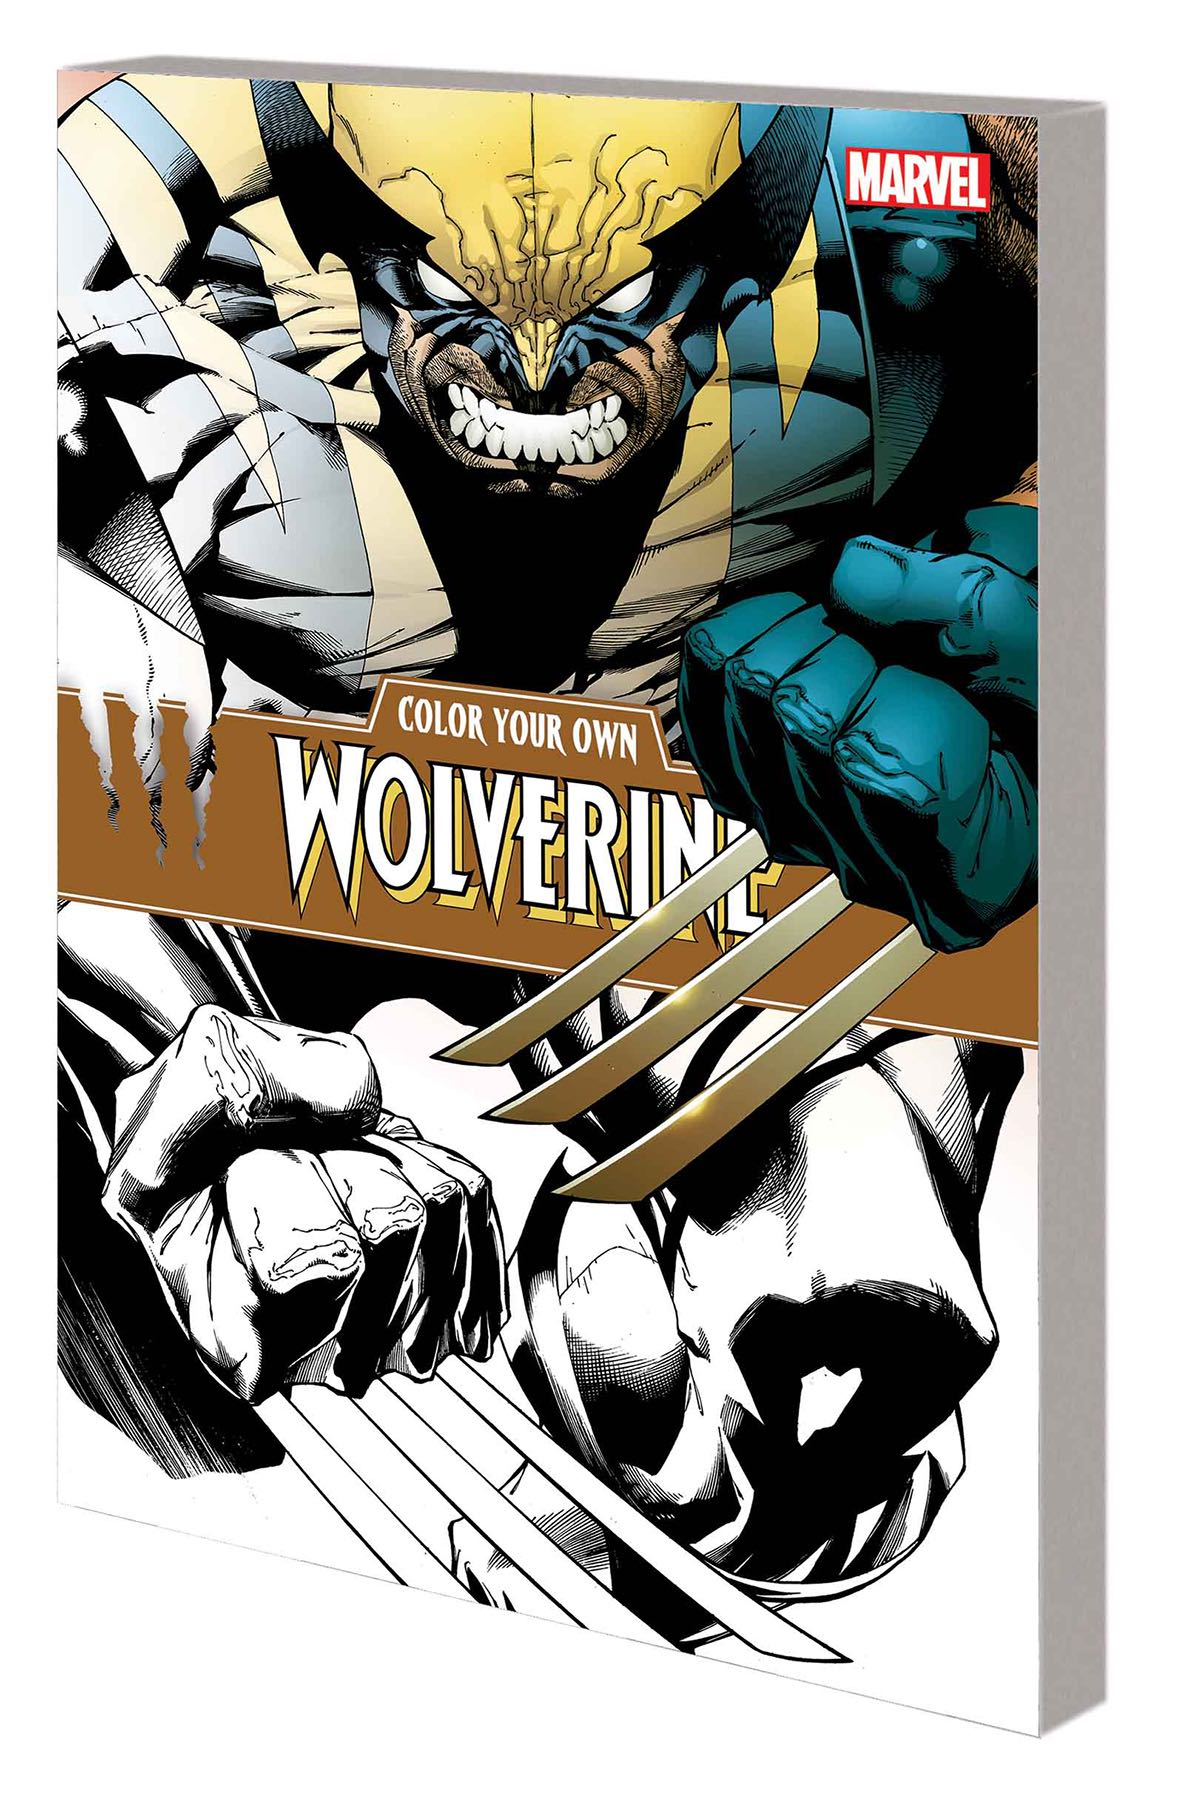 Color Your Own Wolverine Fresh Comics Color Your Own Wolverine